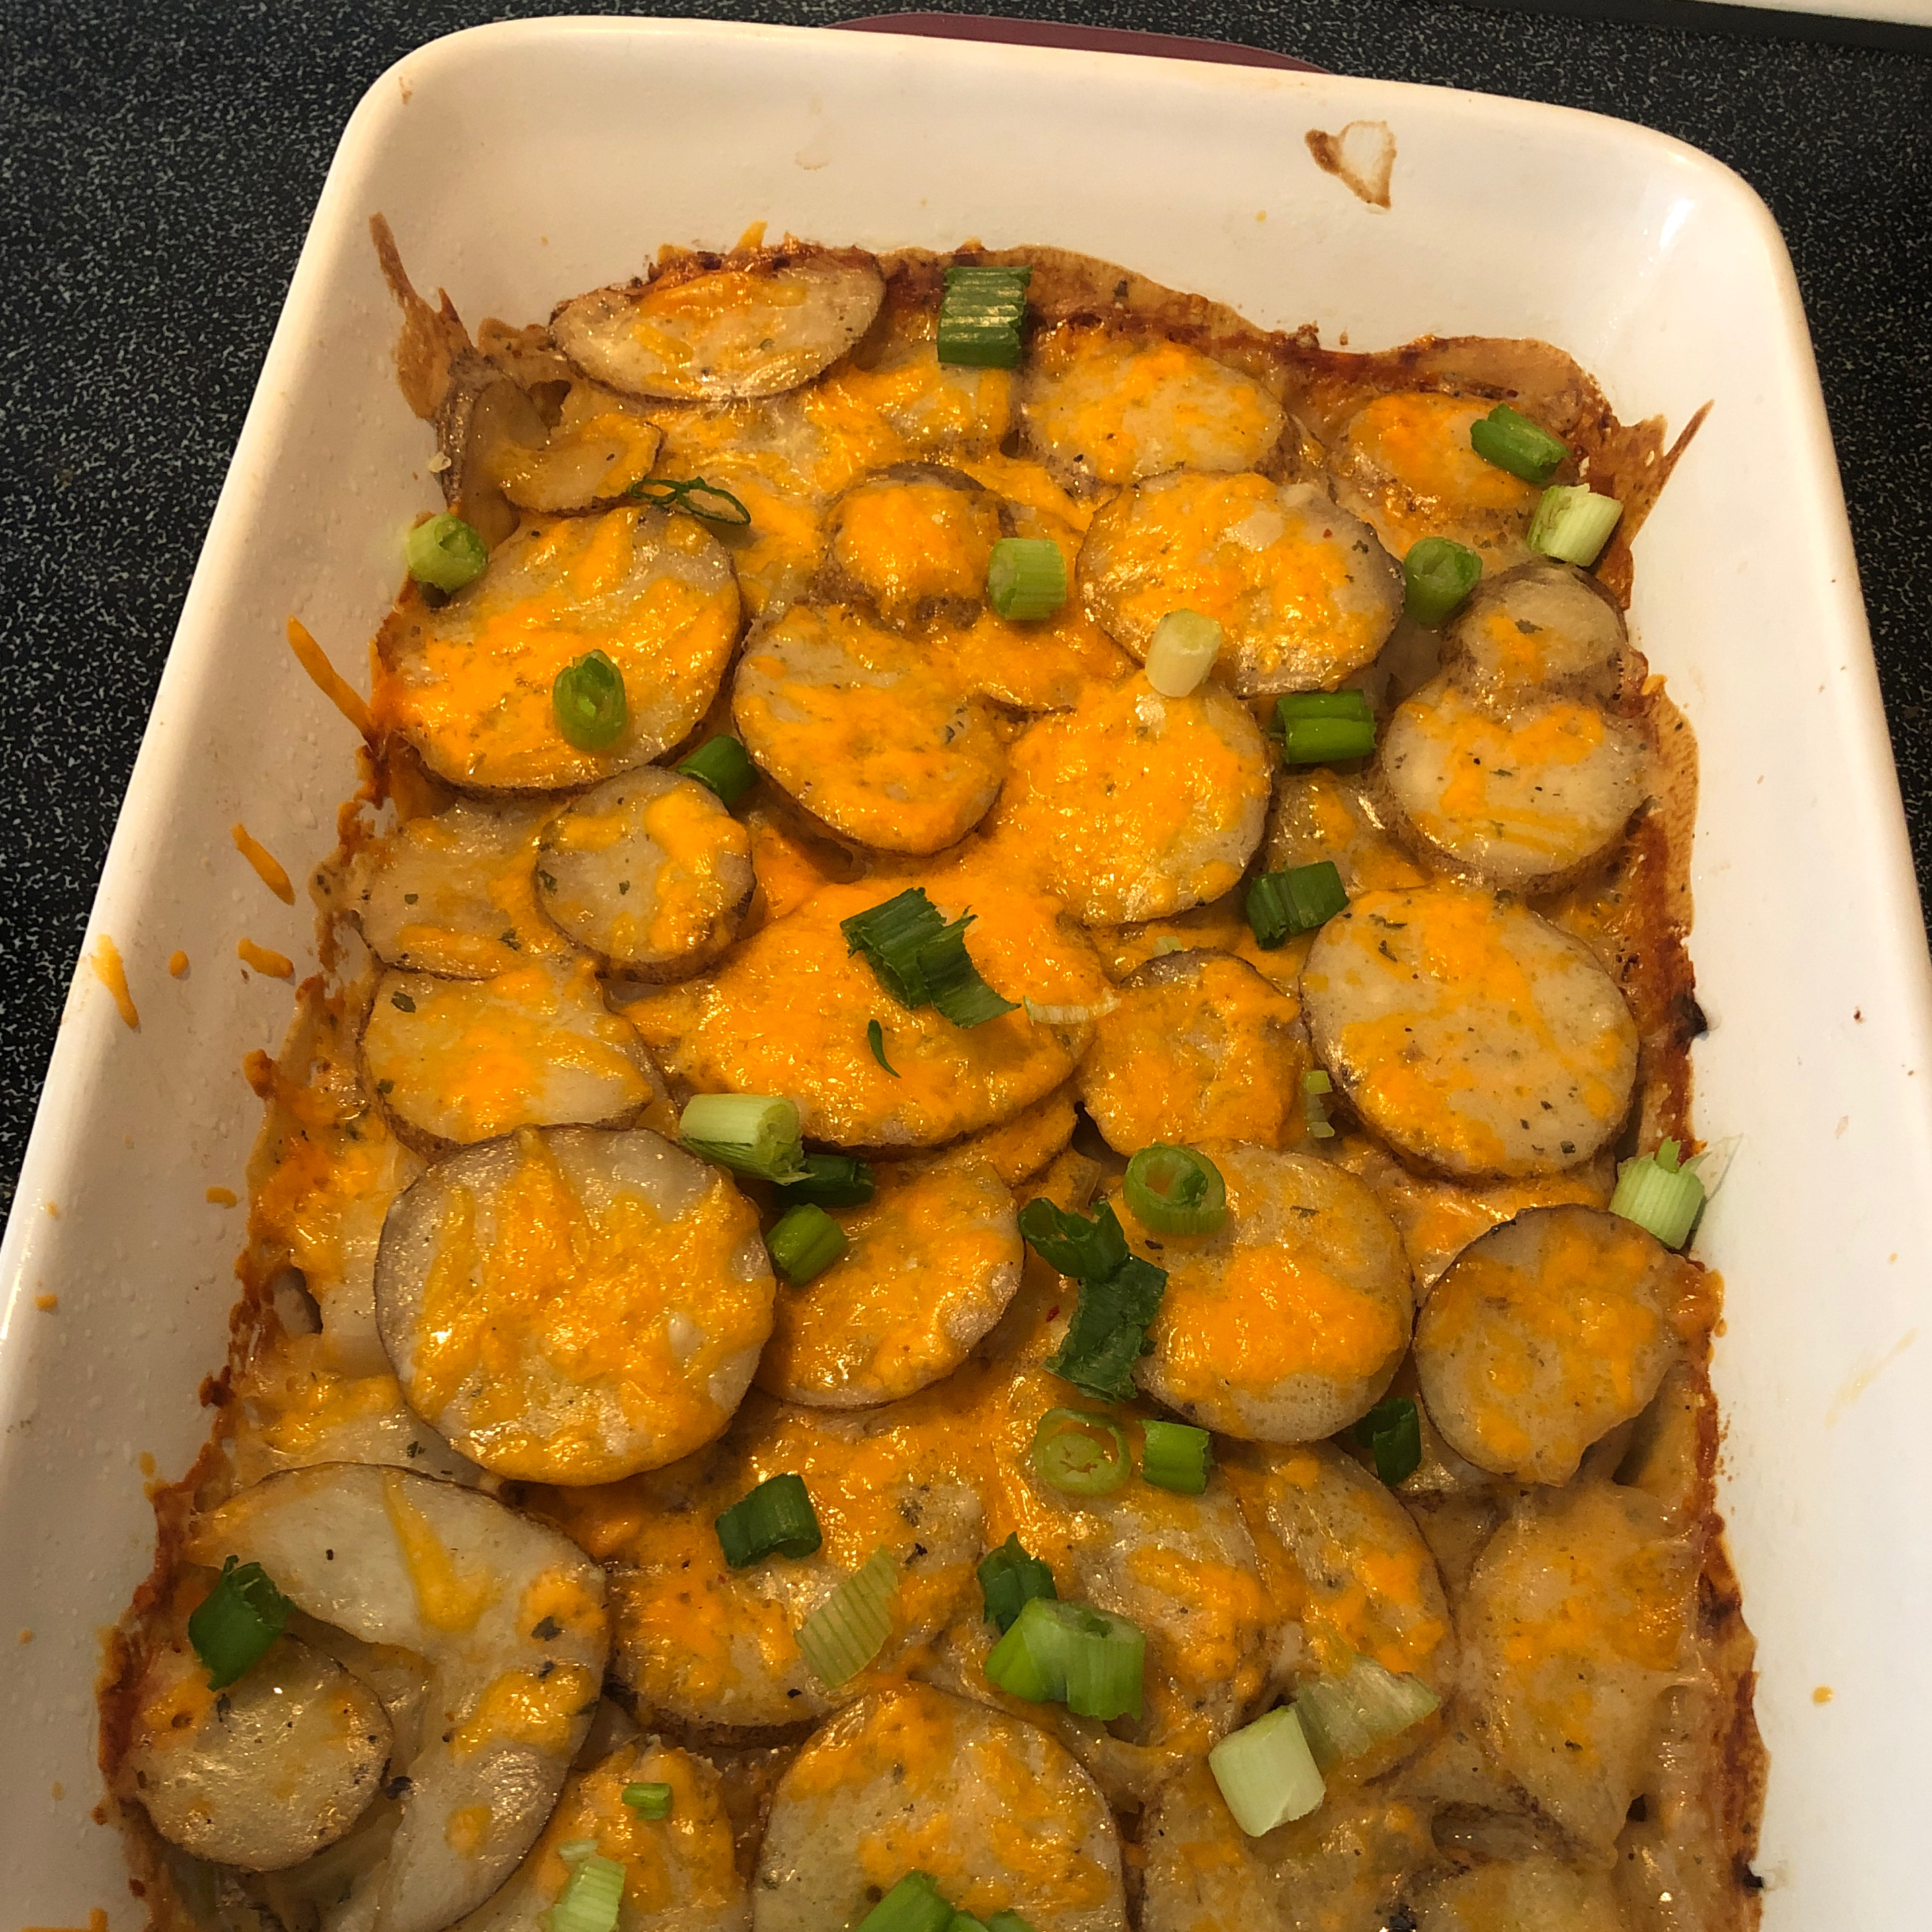 Herbed Scalloped Potatoes and Onions